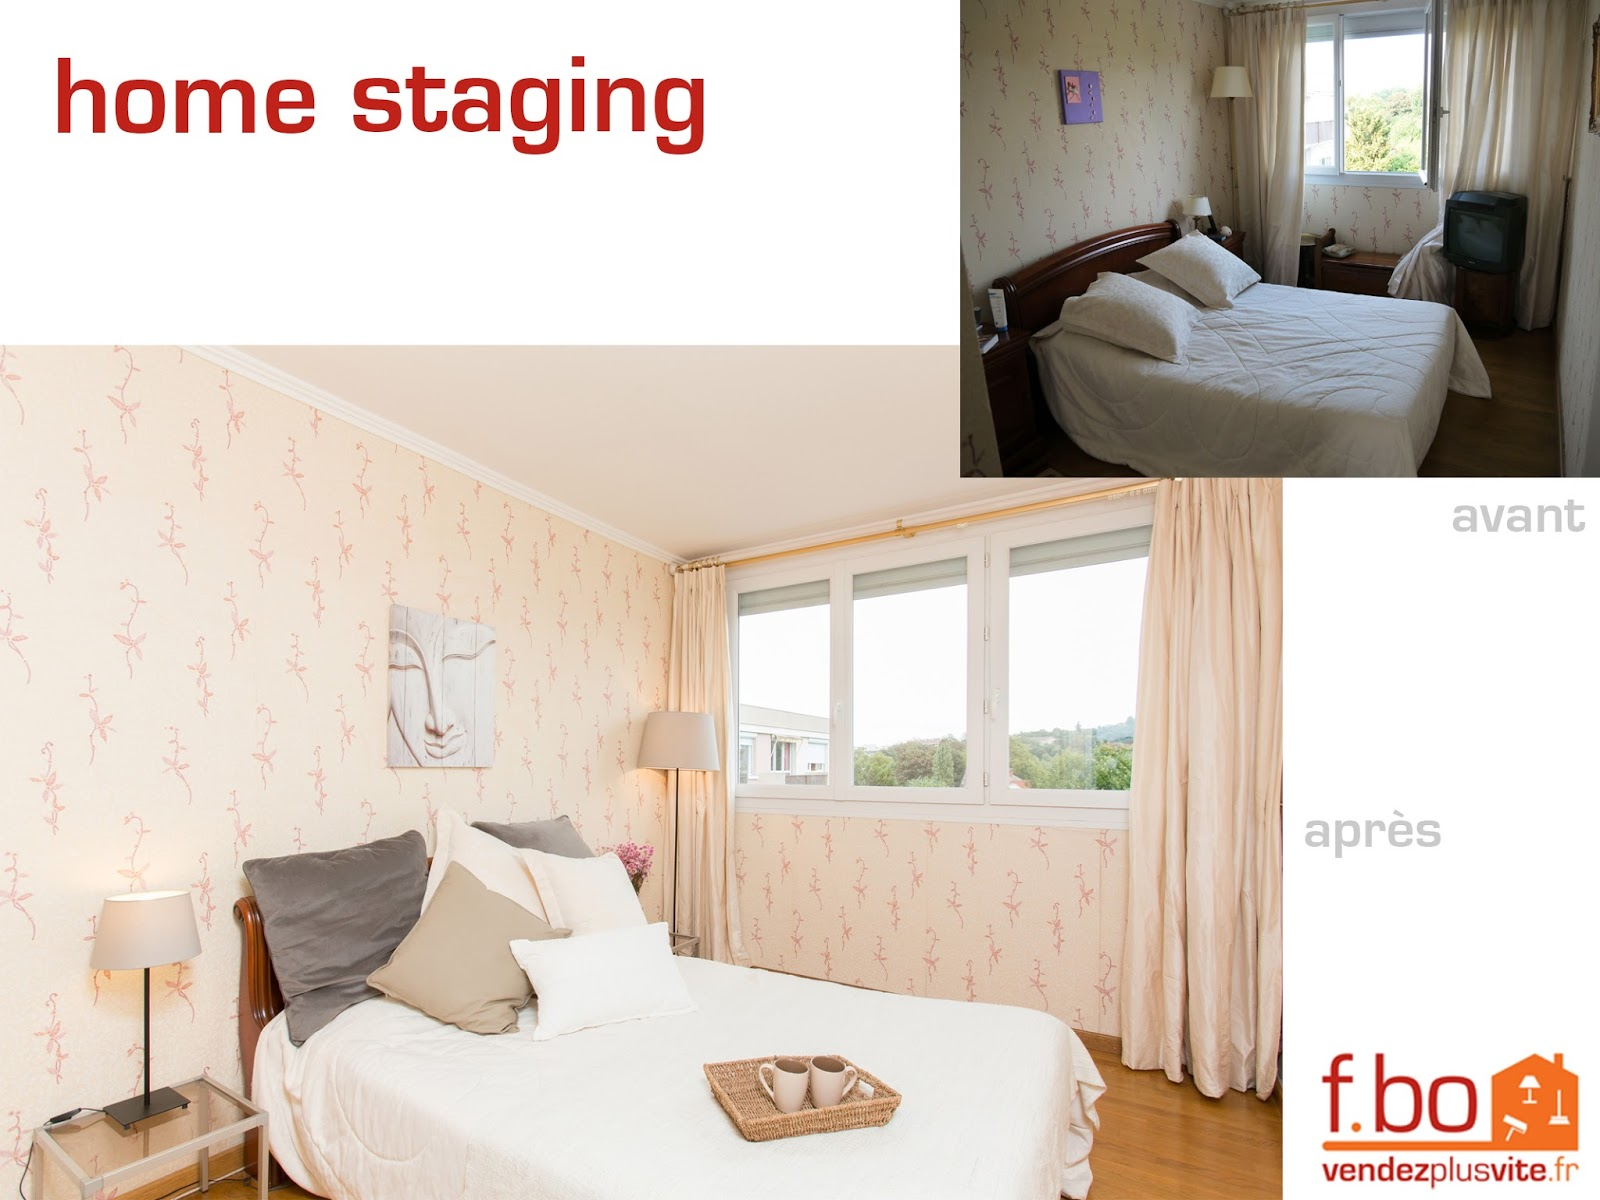 Vendez plus vite votre bien des photos de home staging avant apr s - Faire du home staging soi meme ...